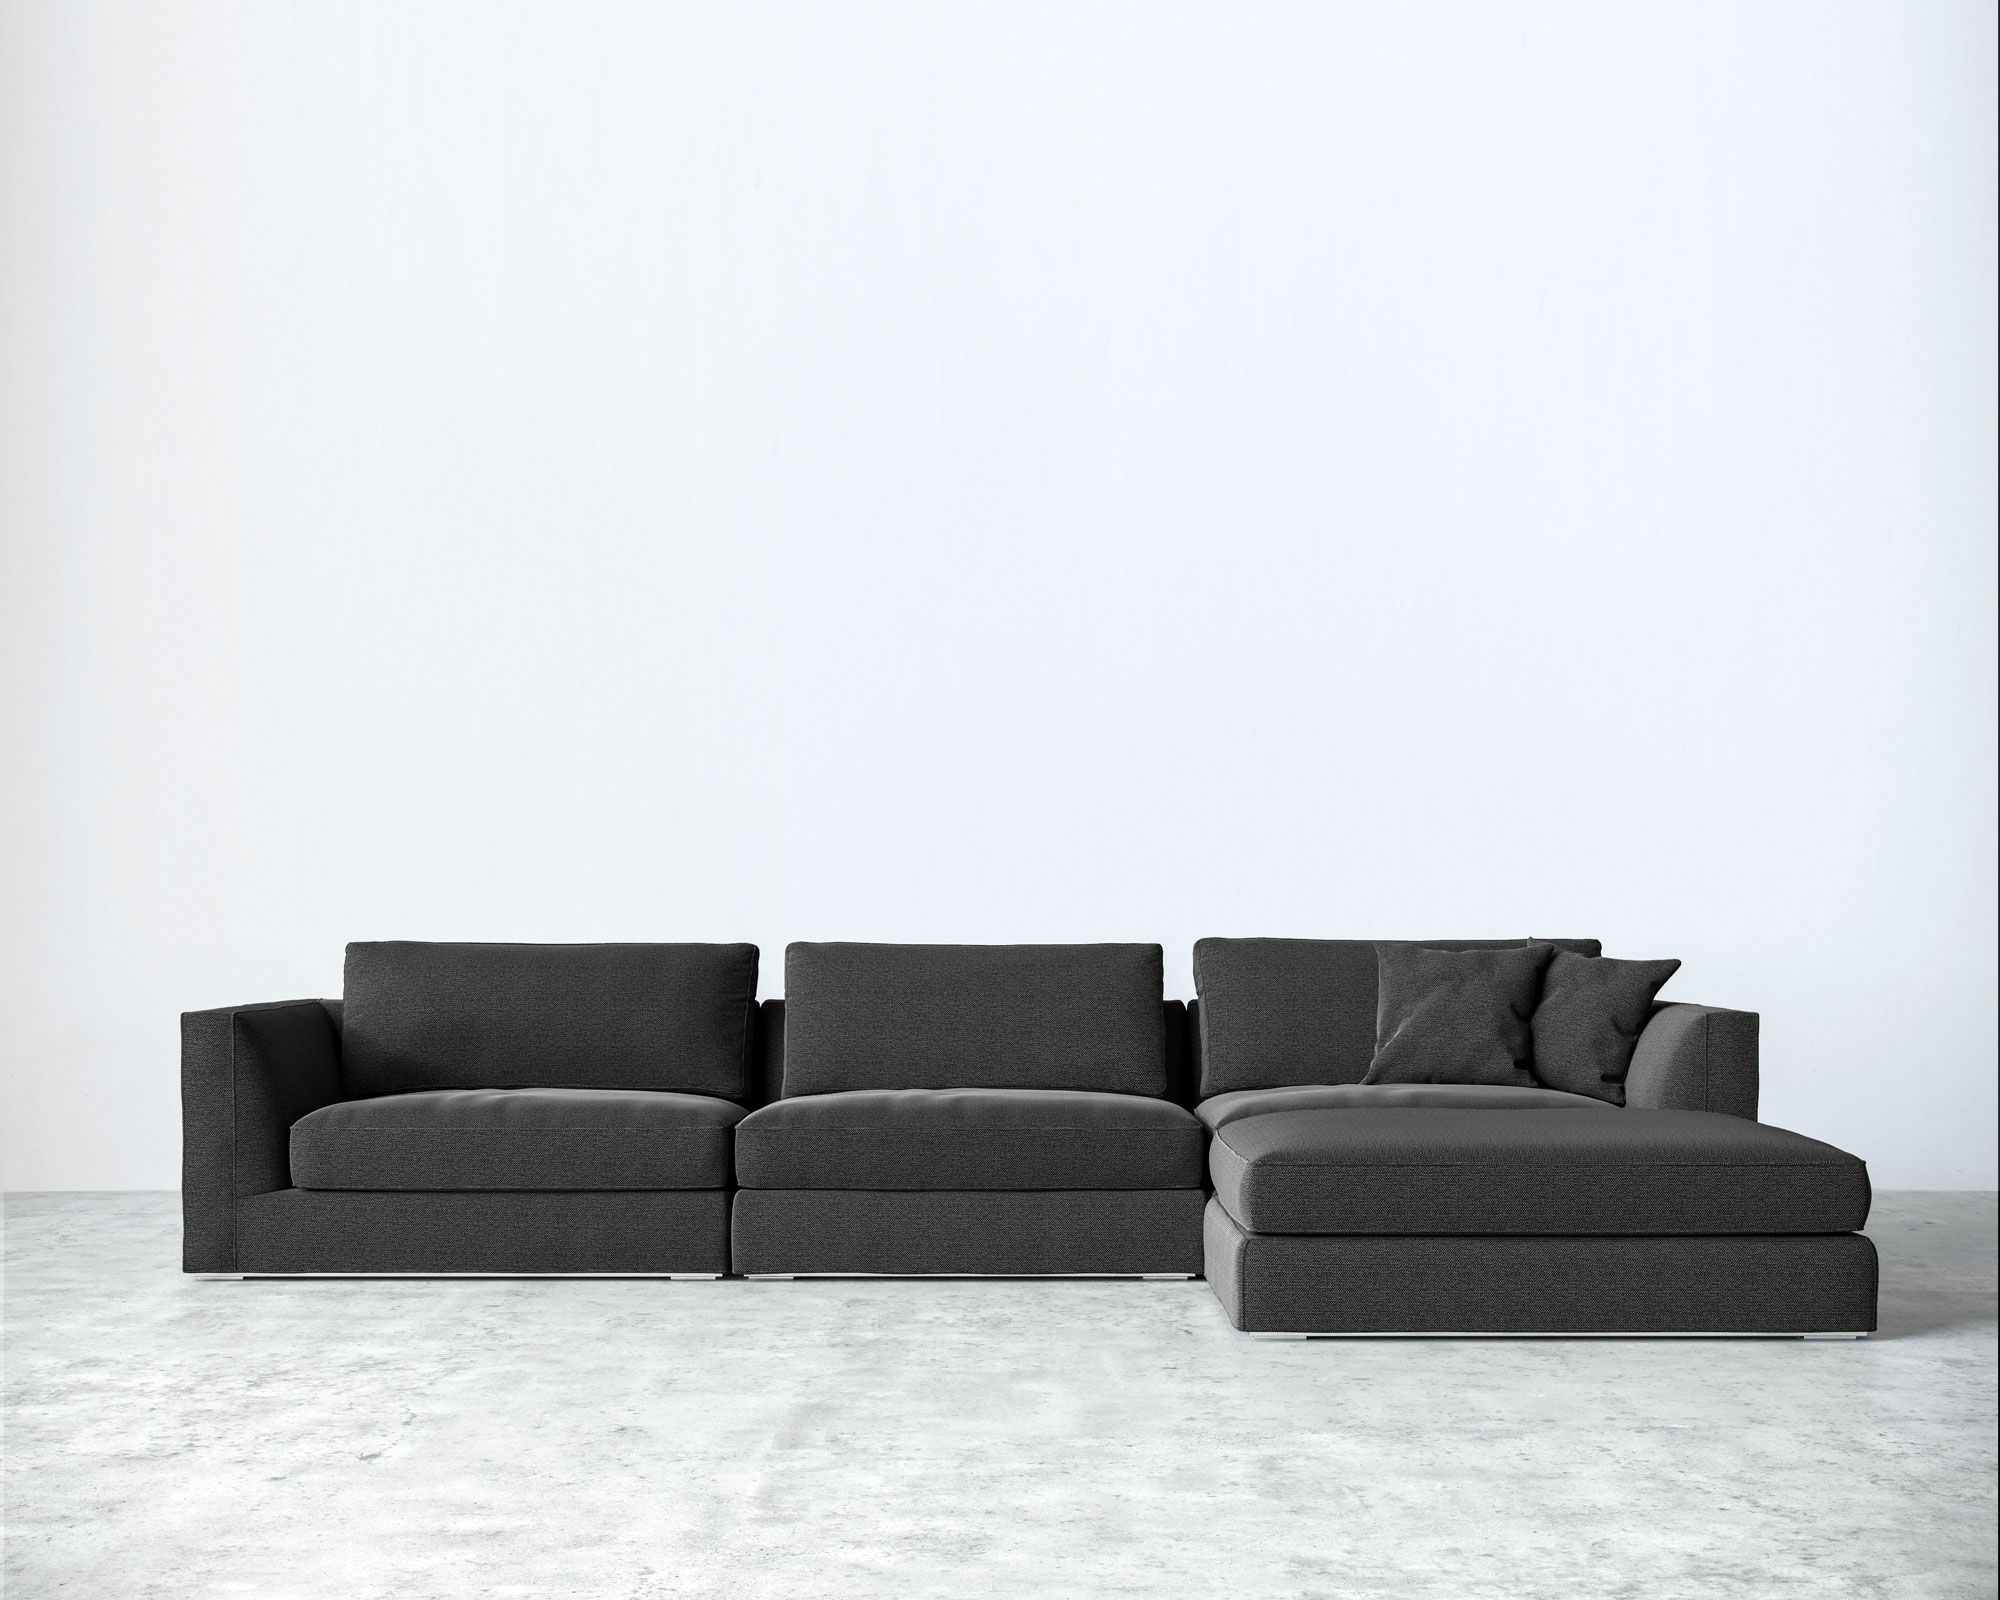 collections overstuffed modular products scandis charcoal modern med adrian sectionals sectional